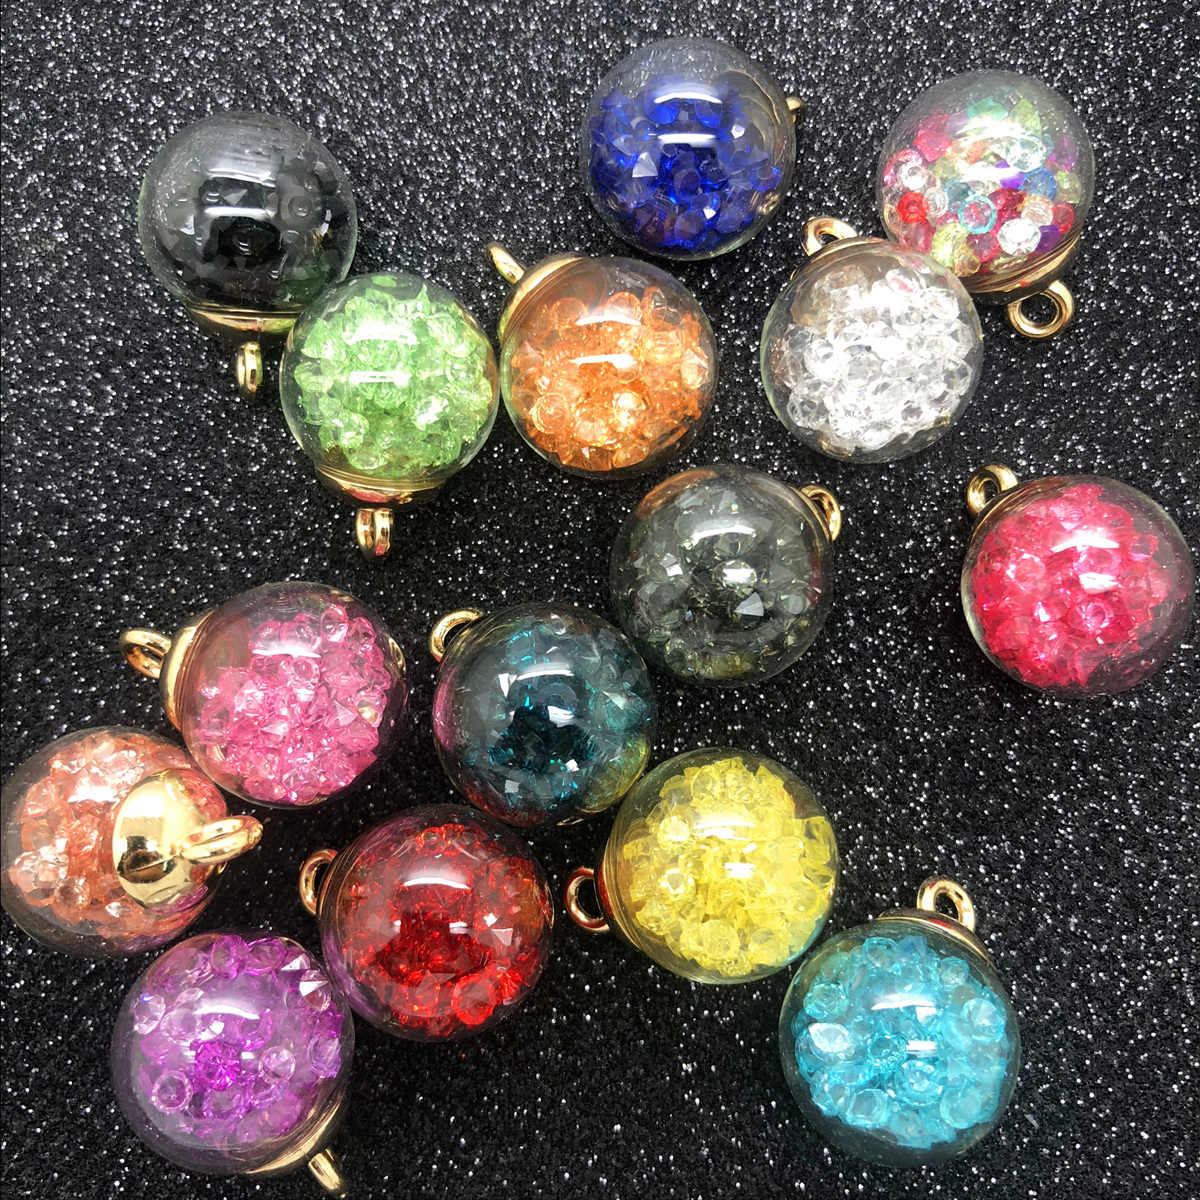 NEW 10PCS 16MM Mini Glass Bottles with Beads Pendant Ornaments Jewelry Making